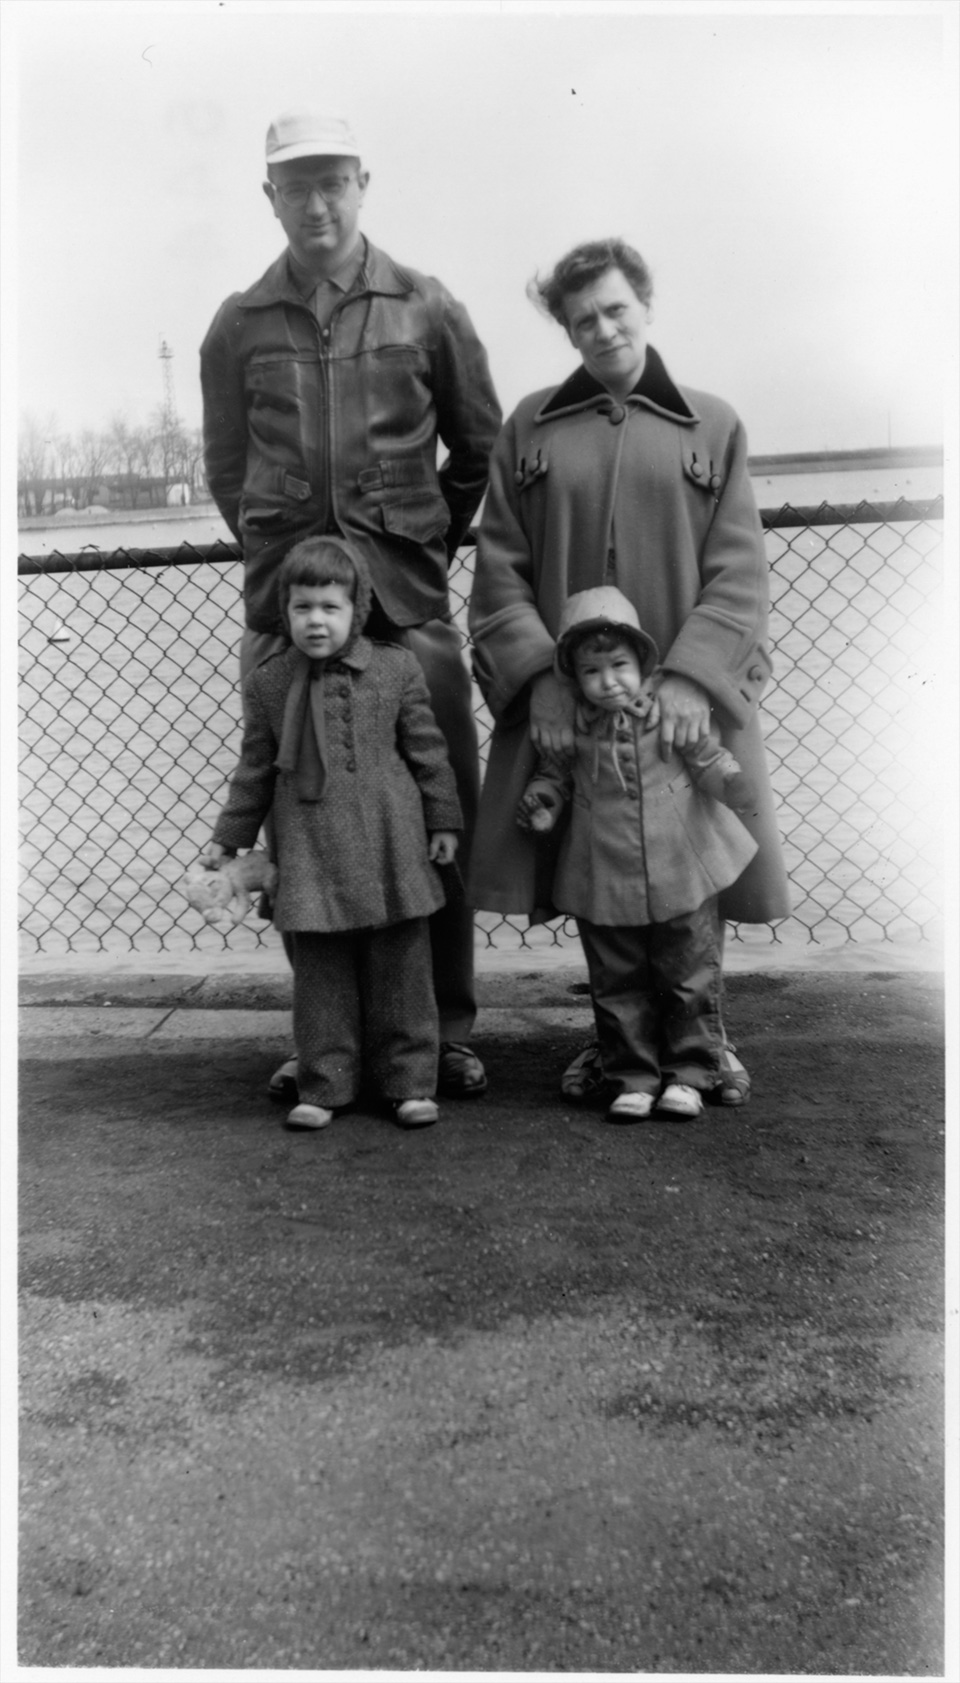 R.S. Mendelsohn with his mother, Rosamond Mendelsohn, at Belmont Harbor in Chicago, standing behind Ruth and Sally.